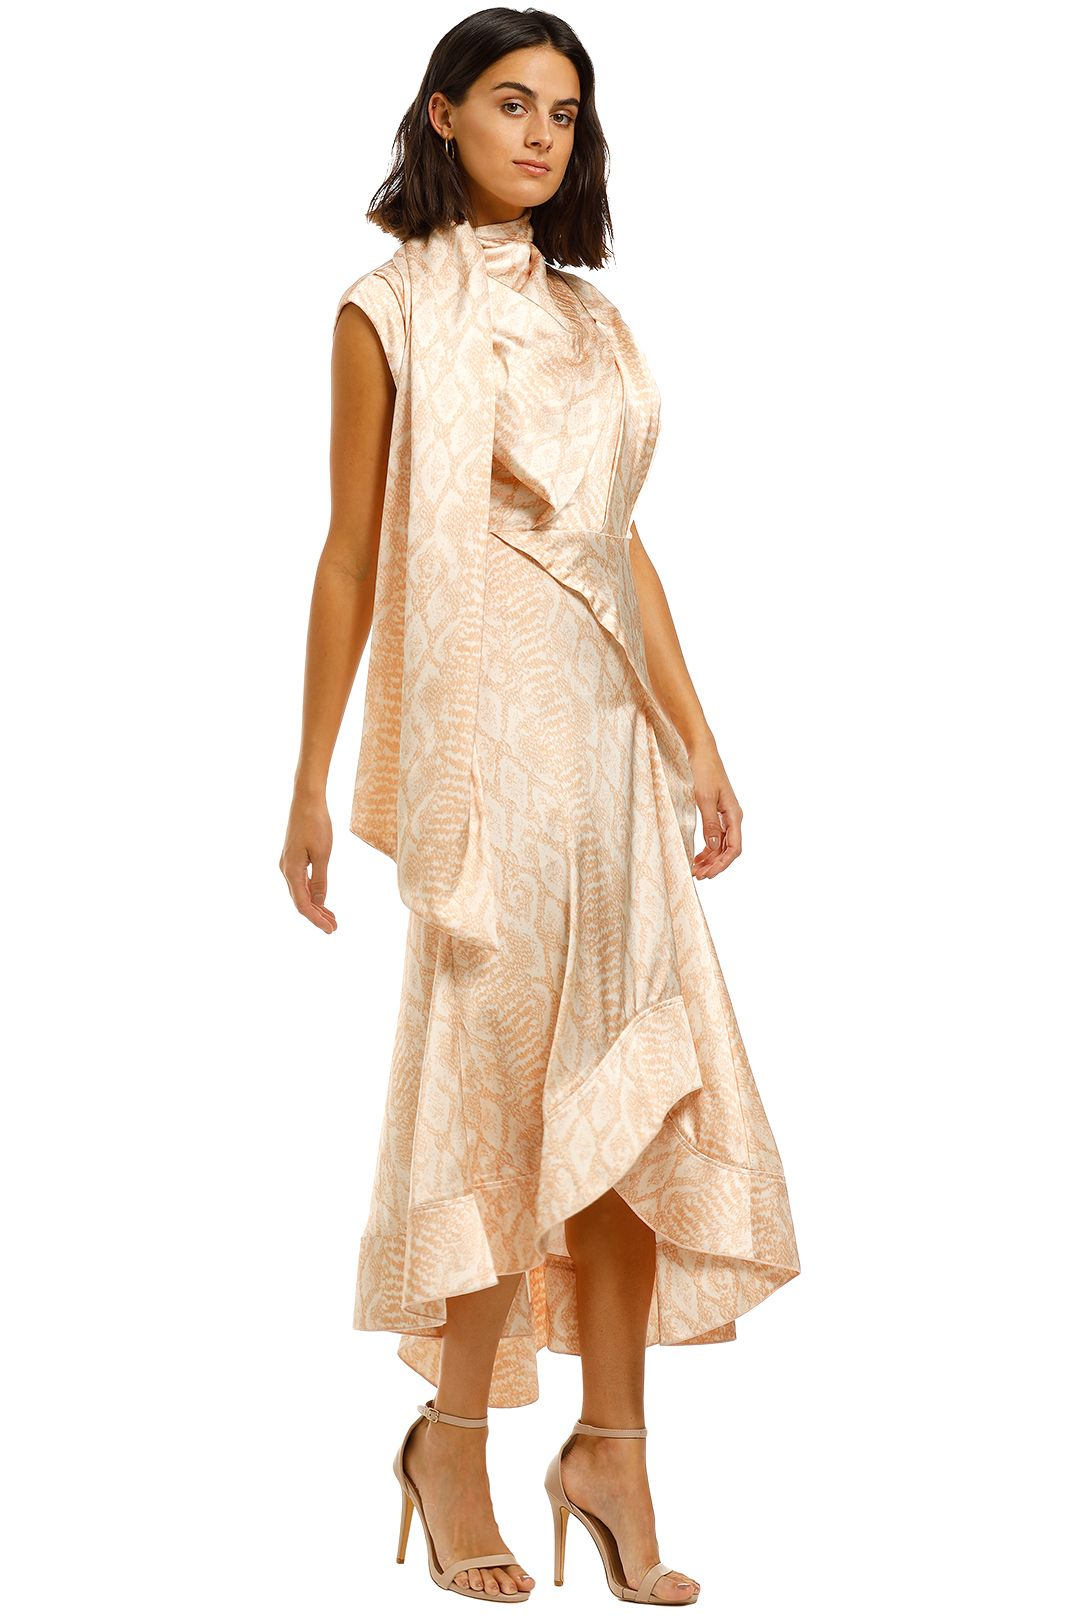 Acler-Gifford-Dress-Side